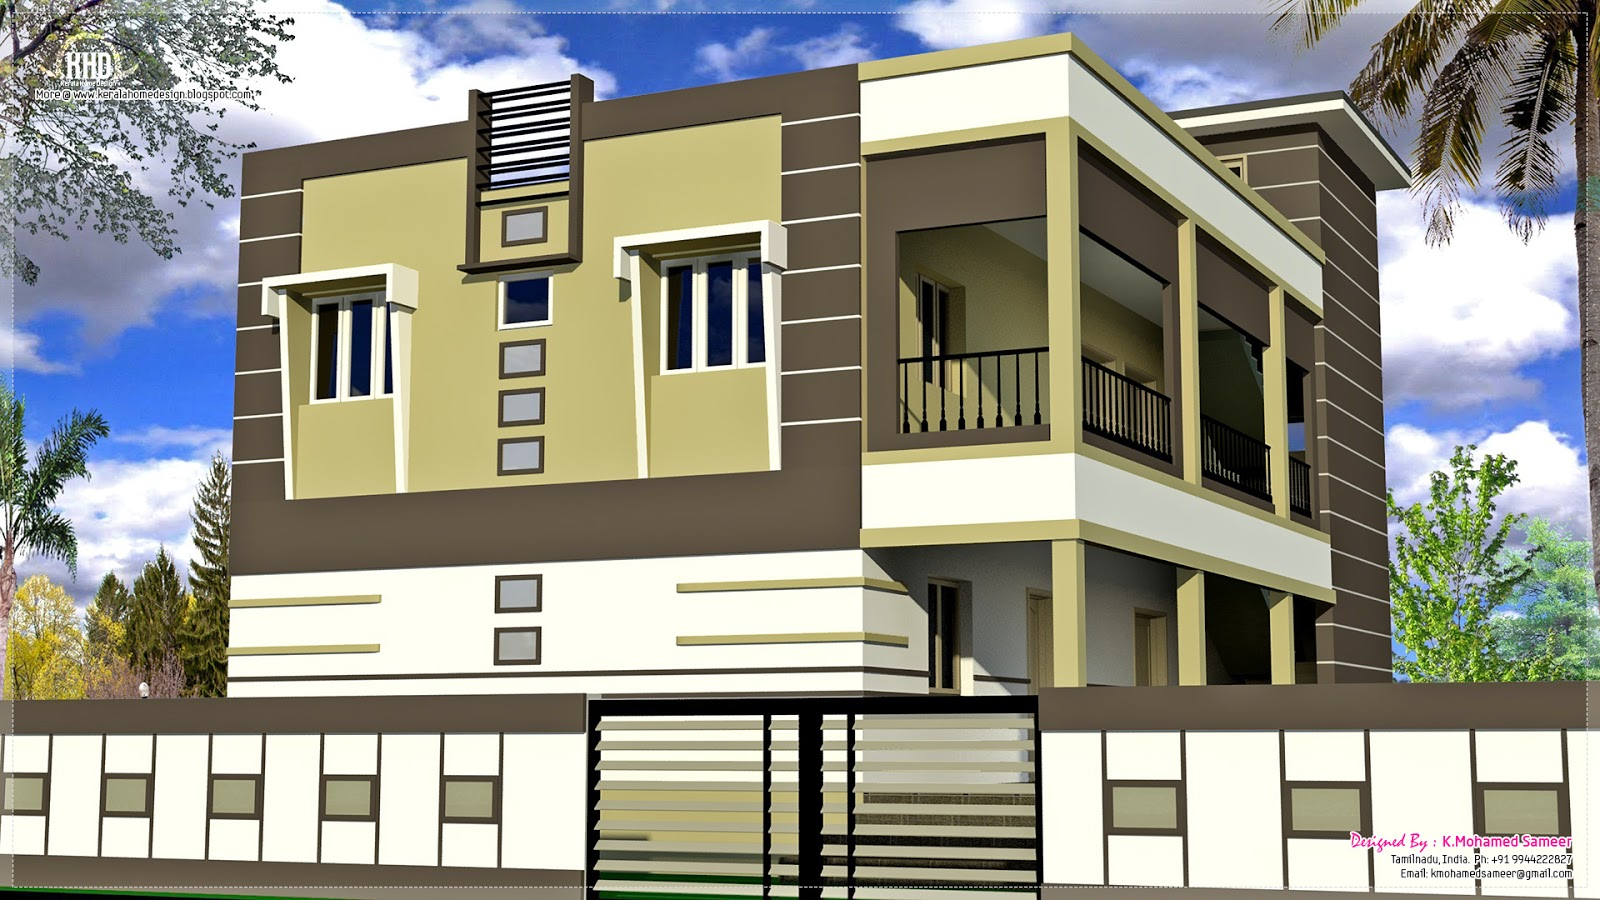 2 south indian house exterior designs kerala home design for Front exterior home design photo gallery